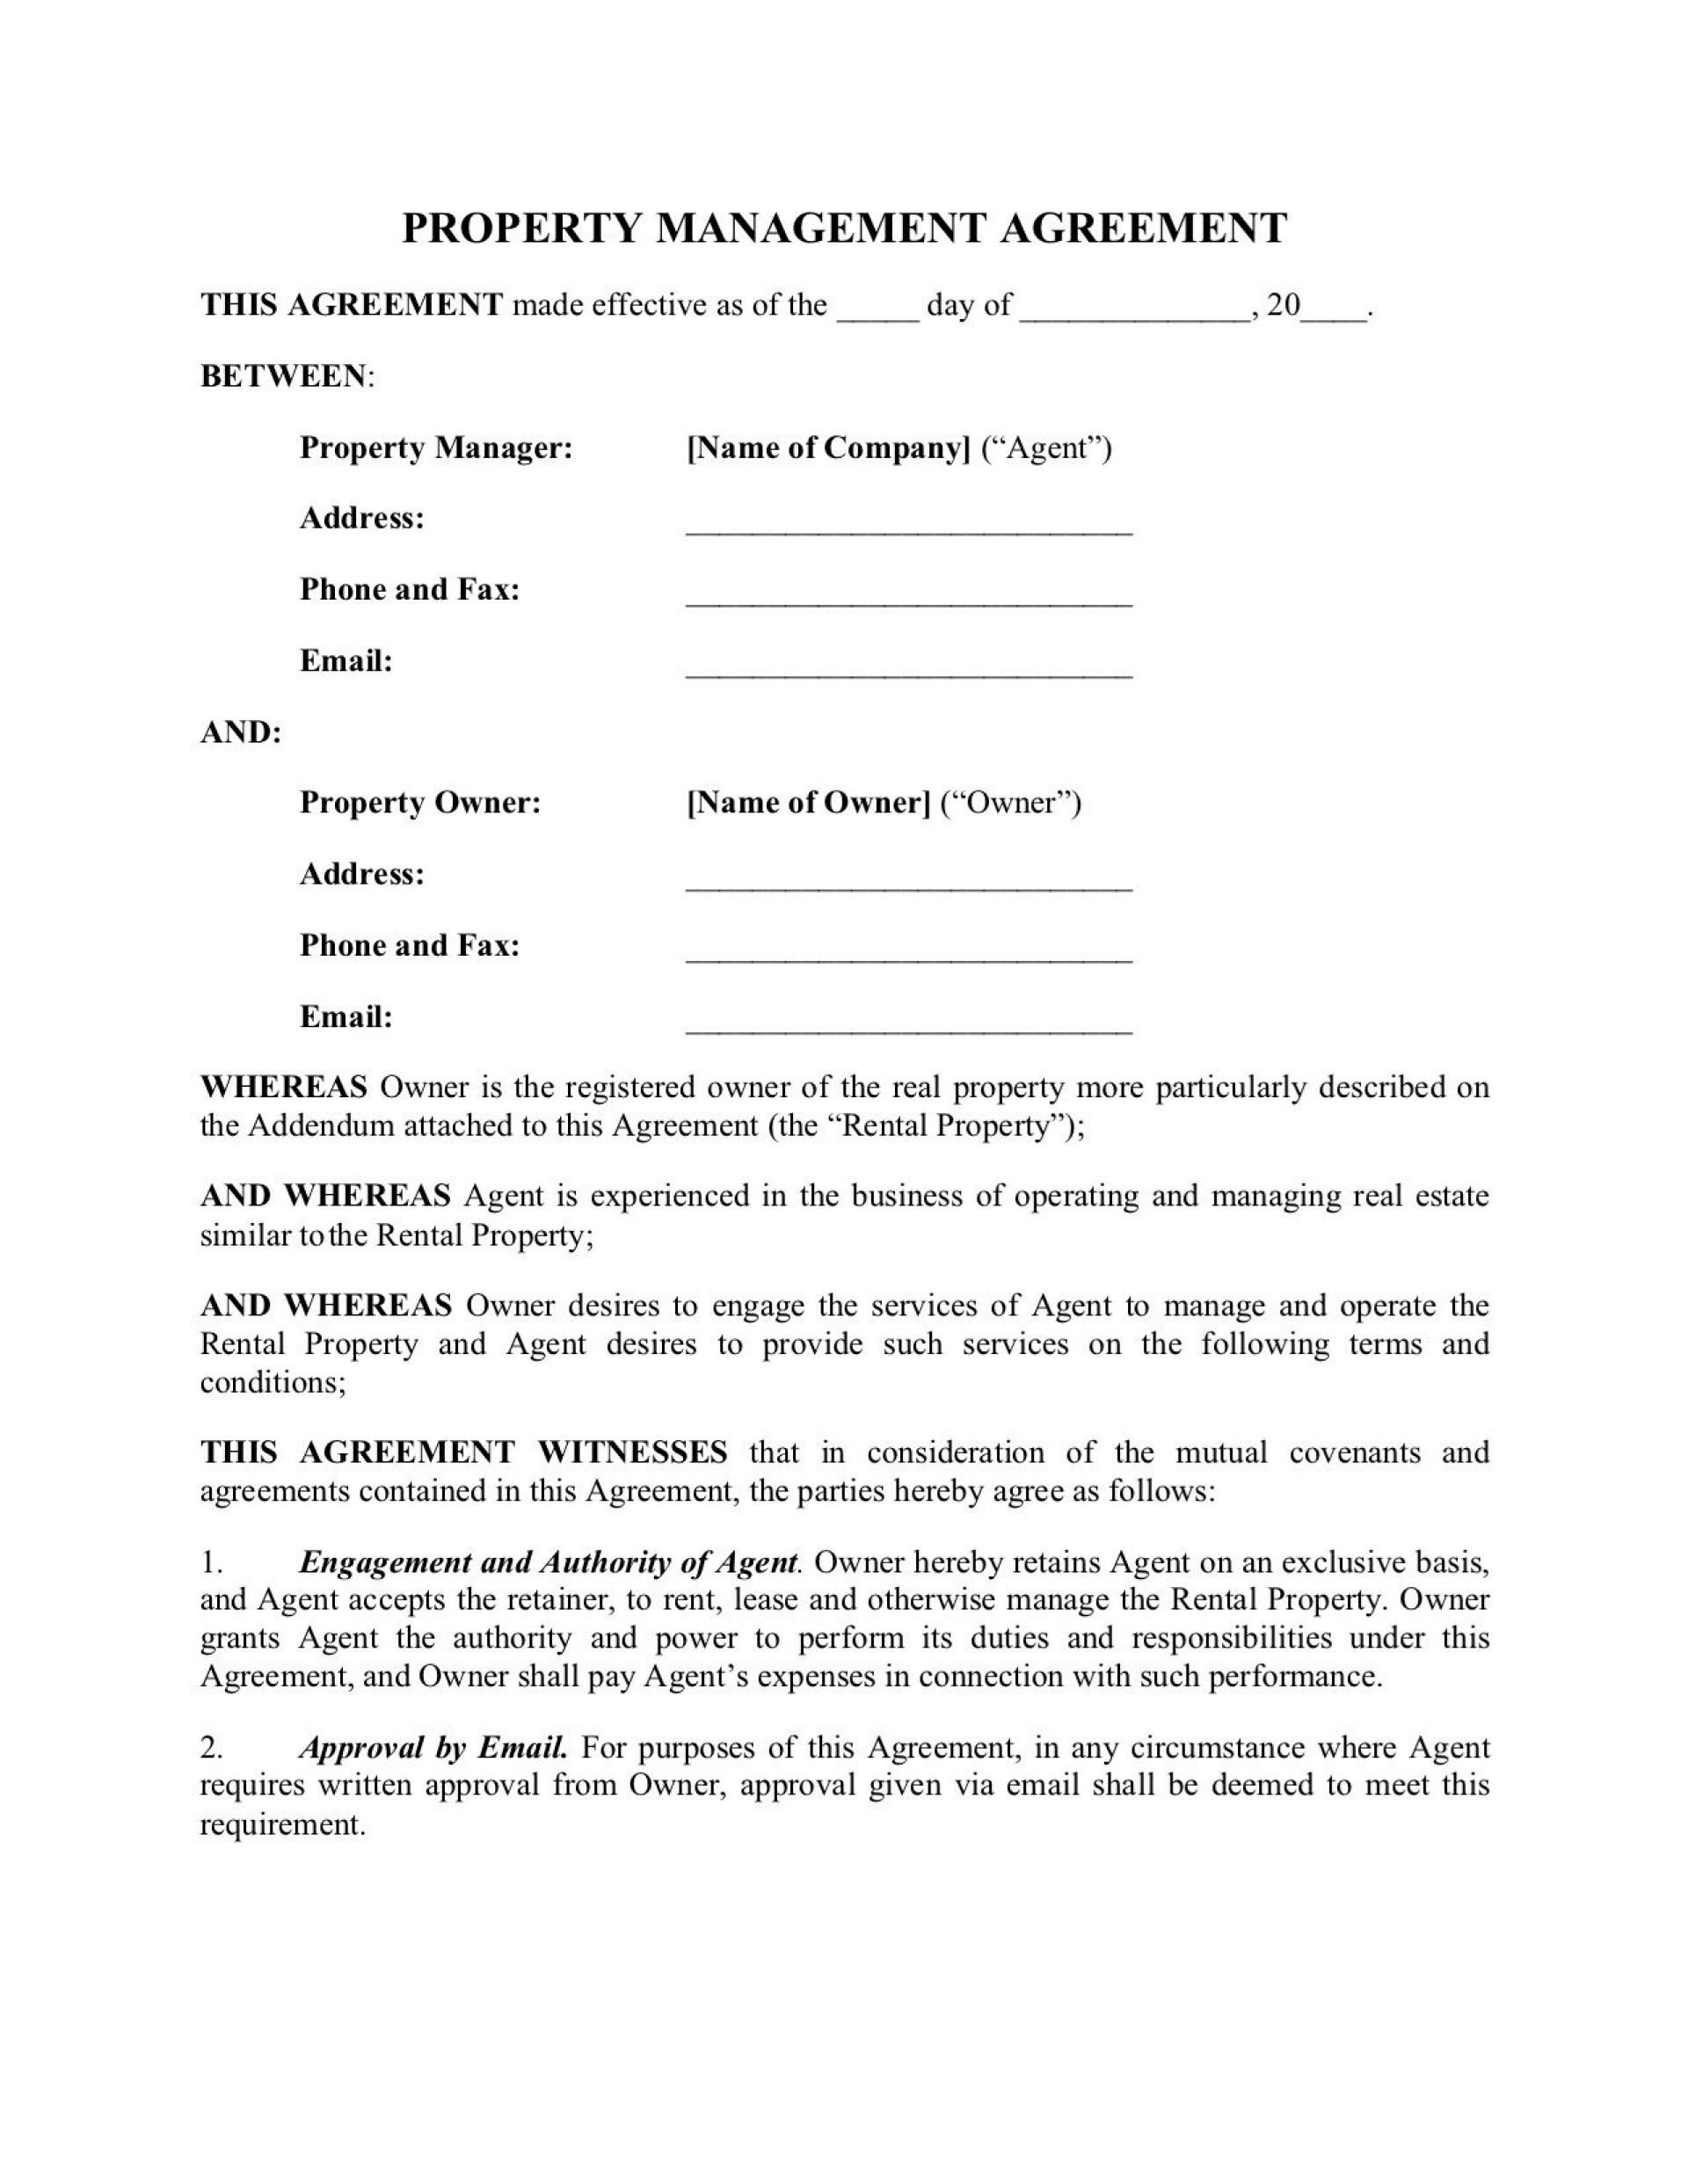 003 Astounding Property Management Agreement Template Design  Templates Sample Termination Of Commercial Form1920